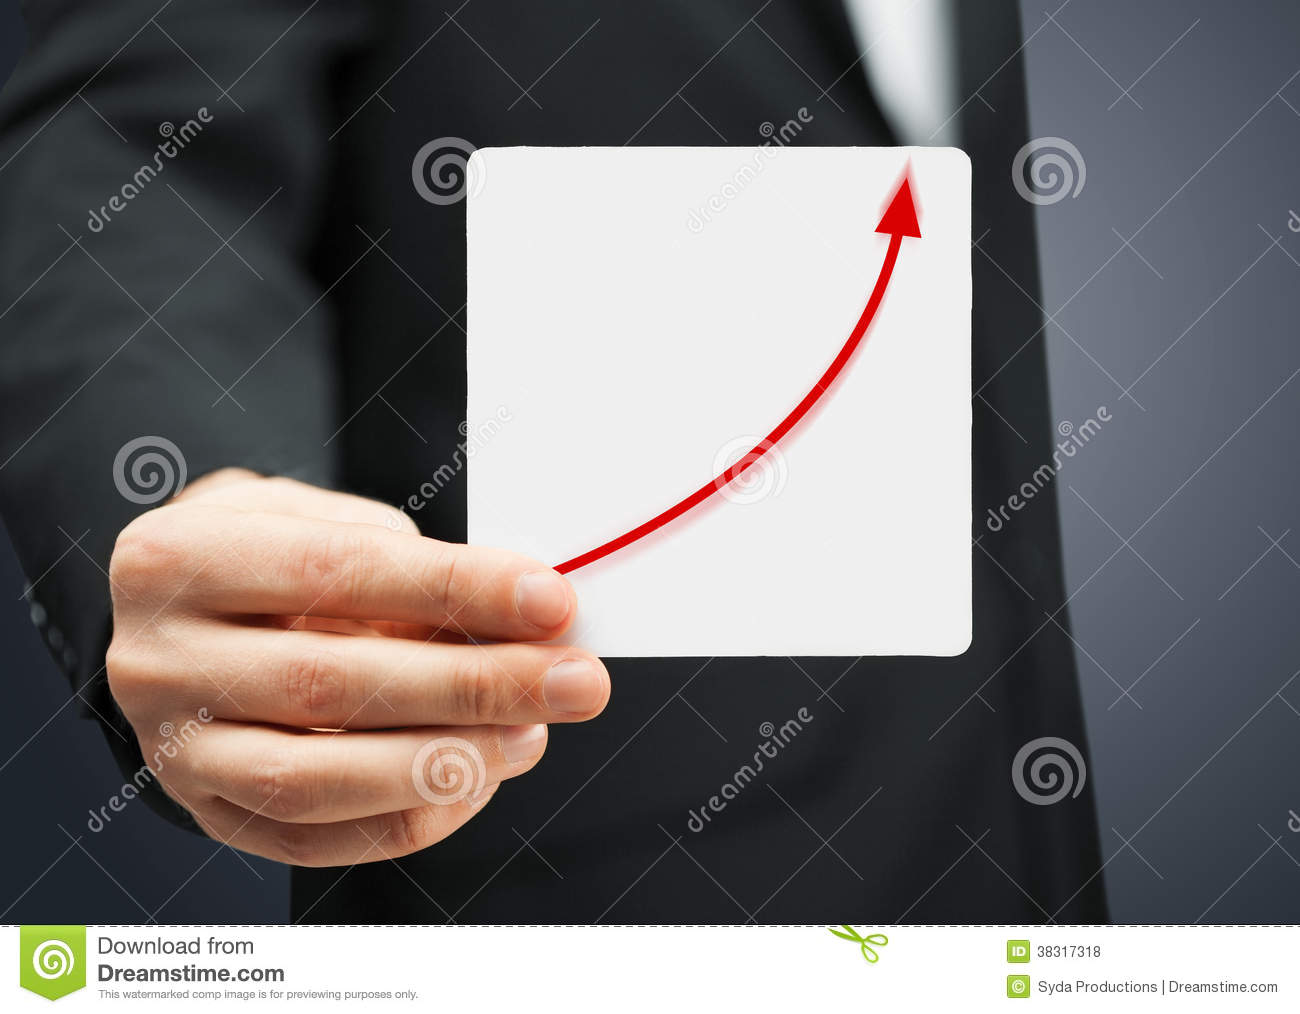 Drawing Line Graphs By Hand : Hand drawing an increasing bar line graph royalty free